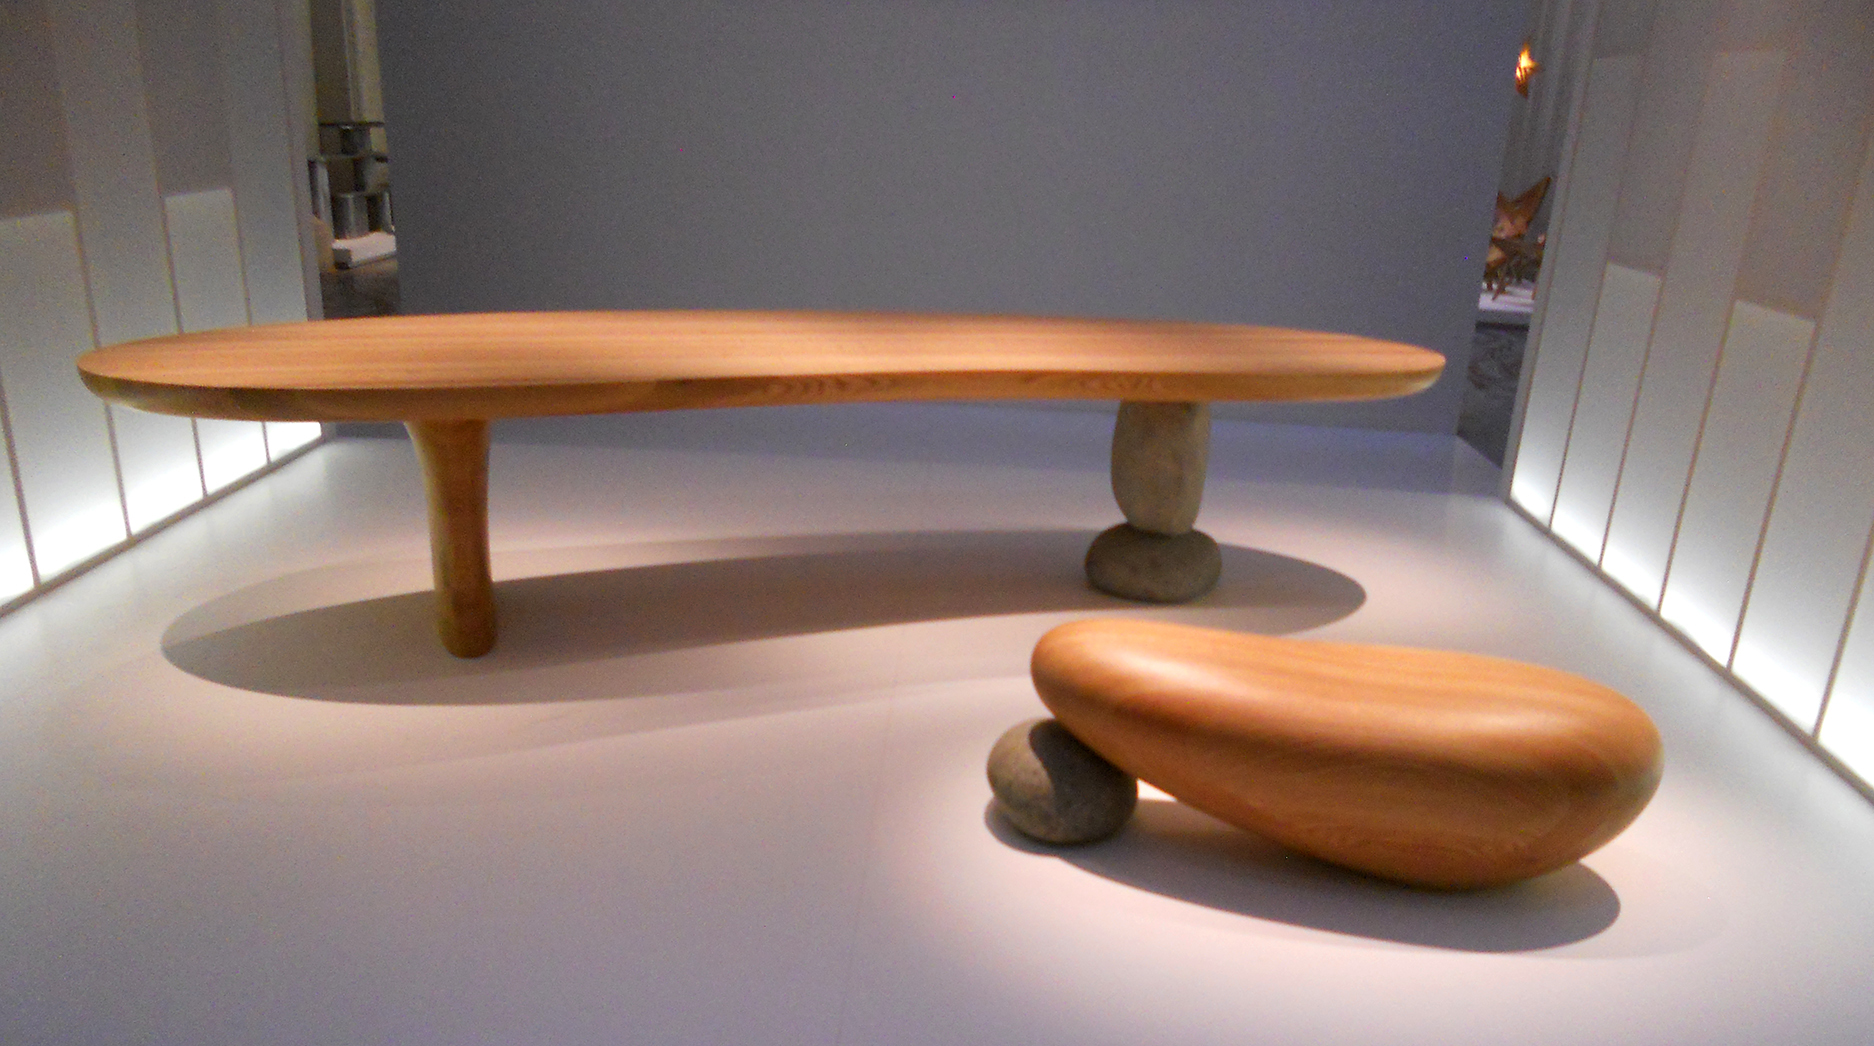 Seat and Table by Choi Byung-hoon